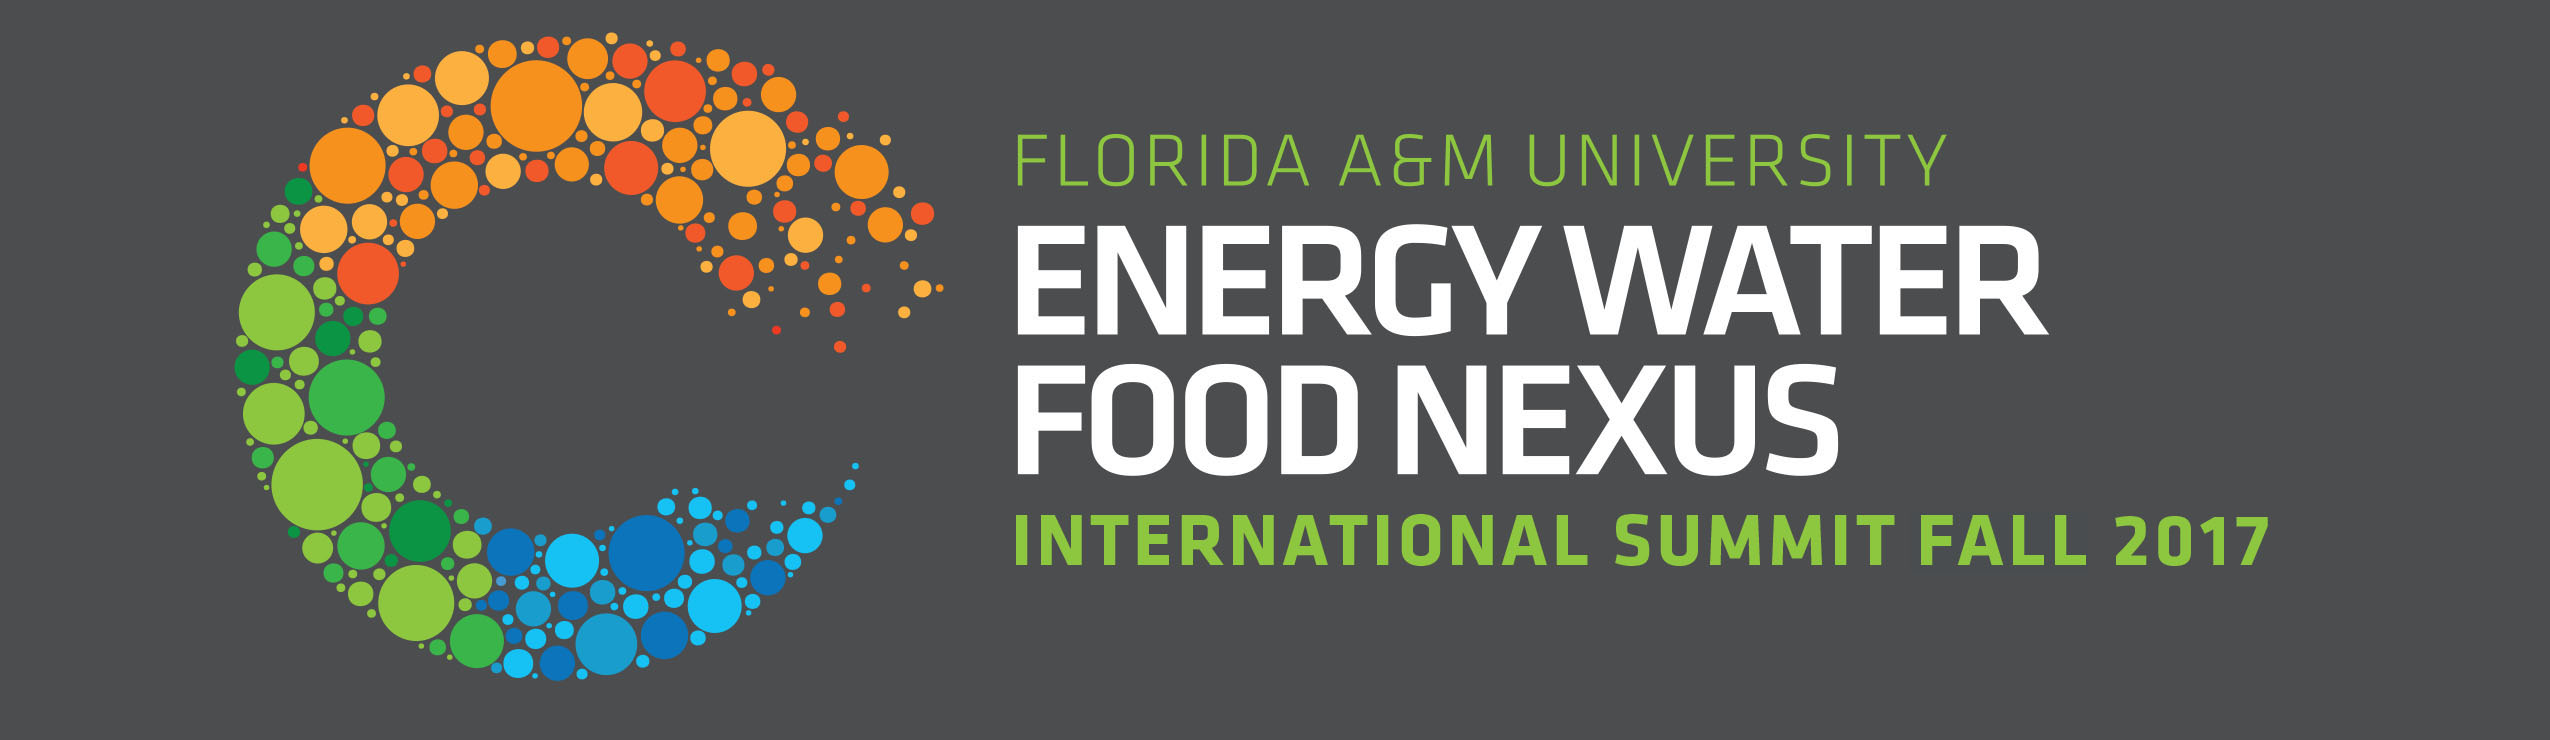 EnergyWaterFoodNexus International Summit Fall 2017